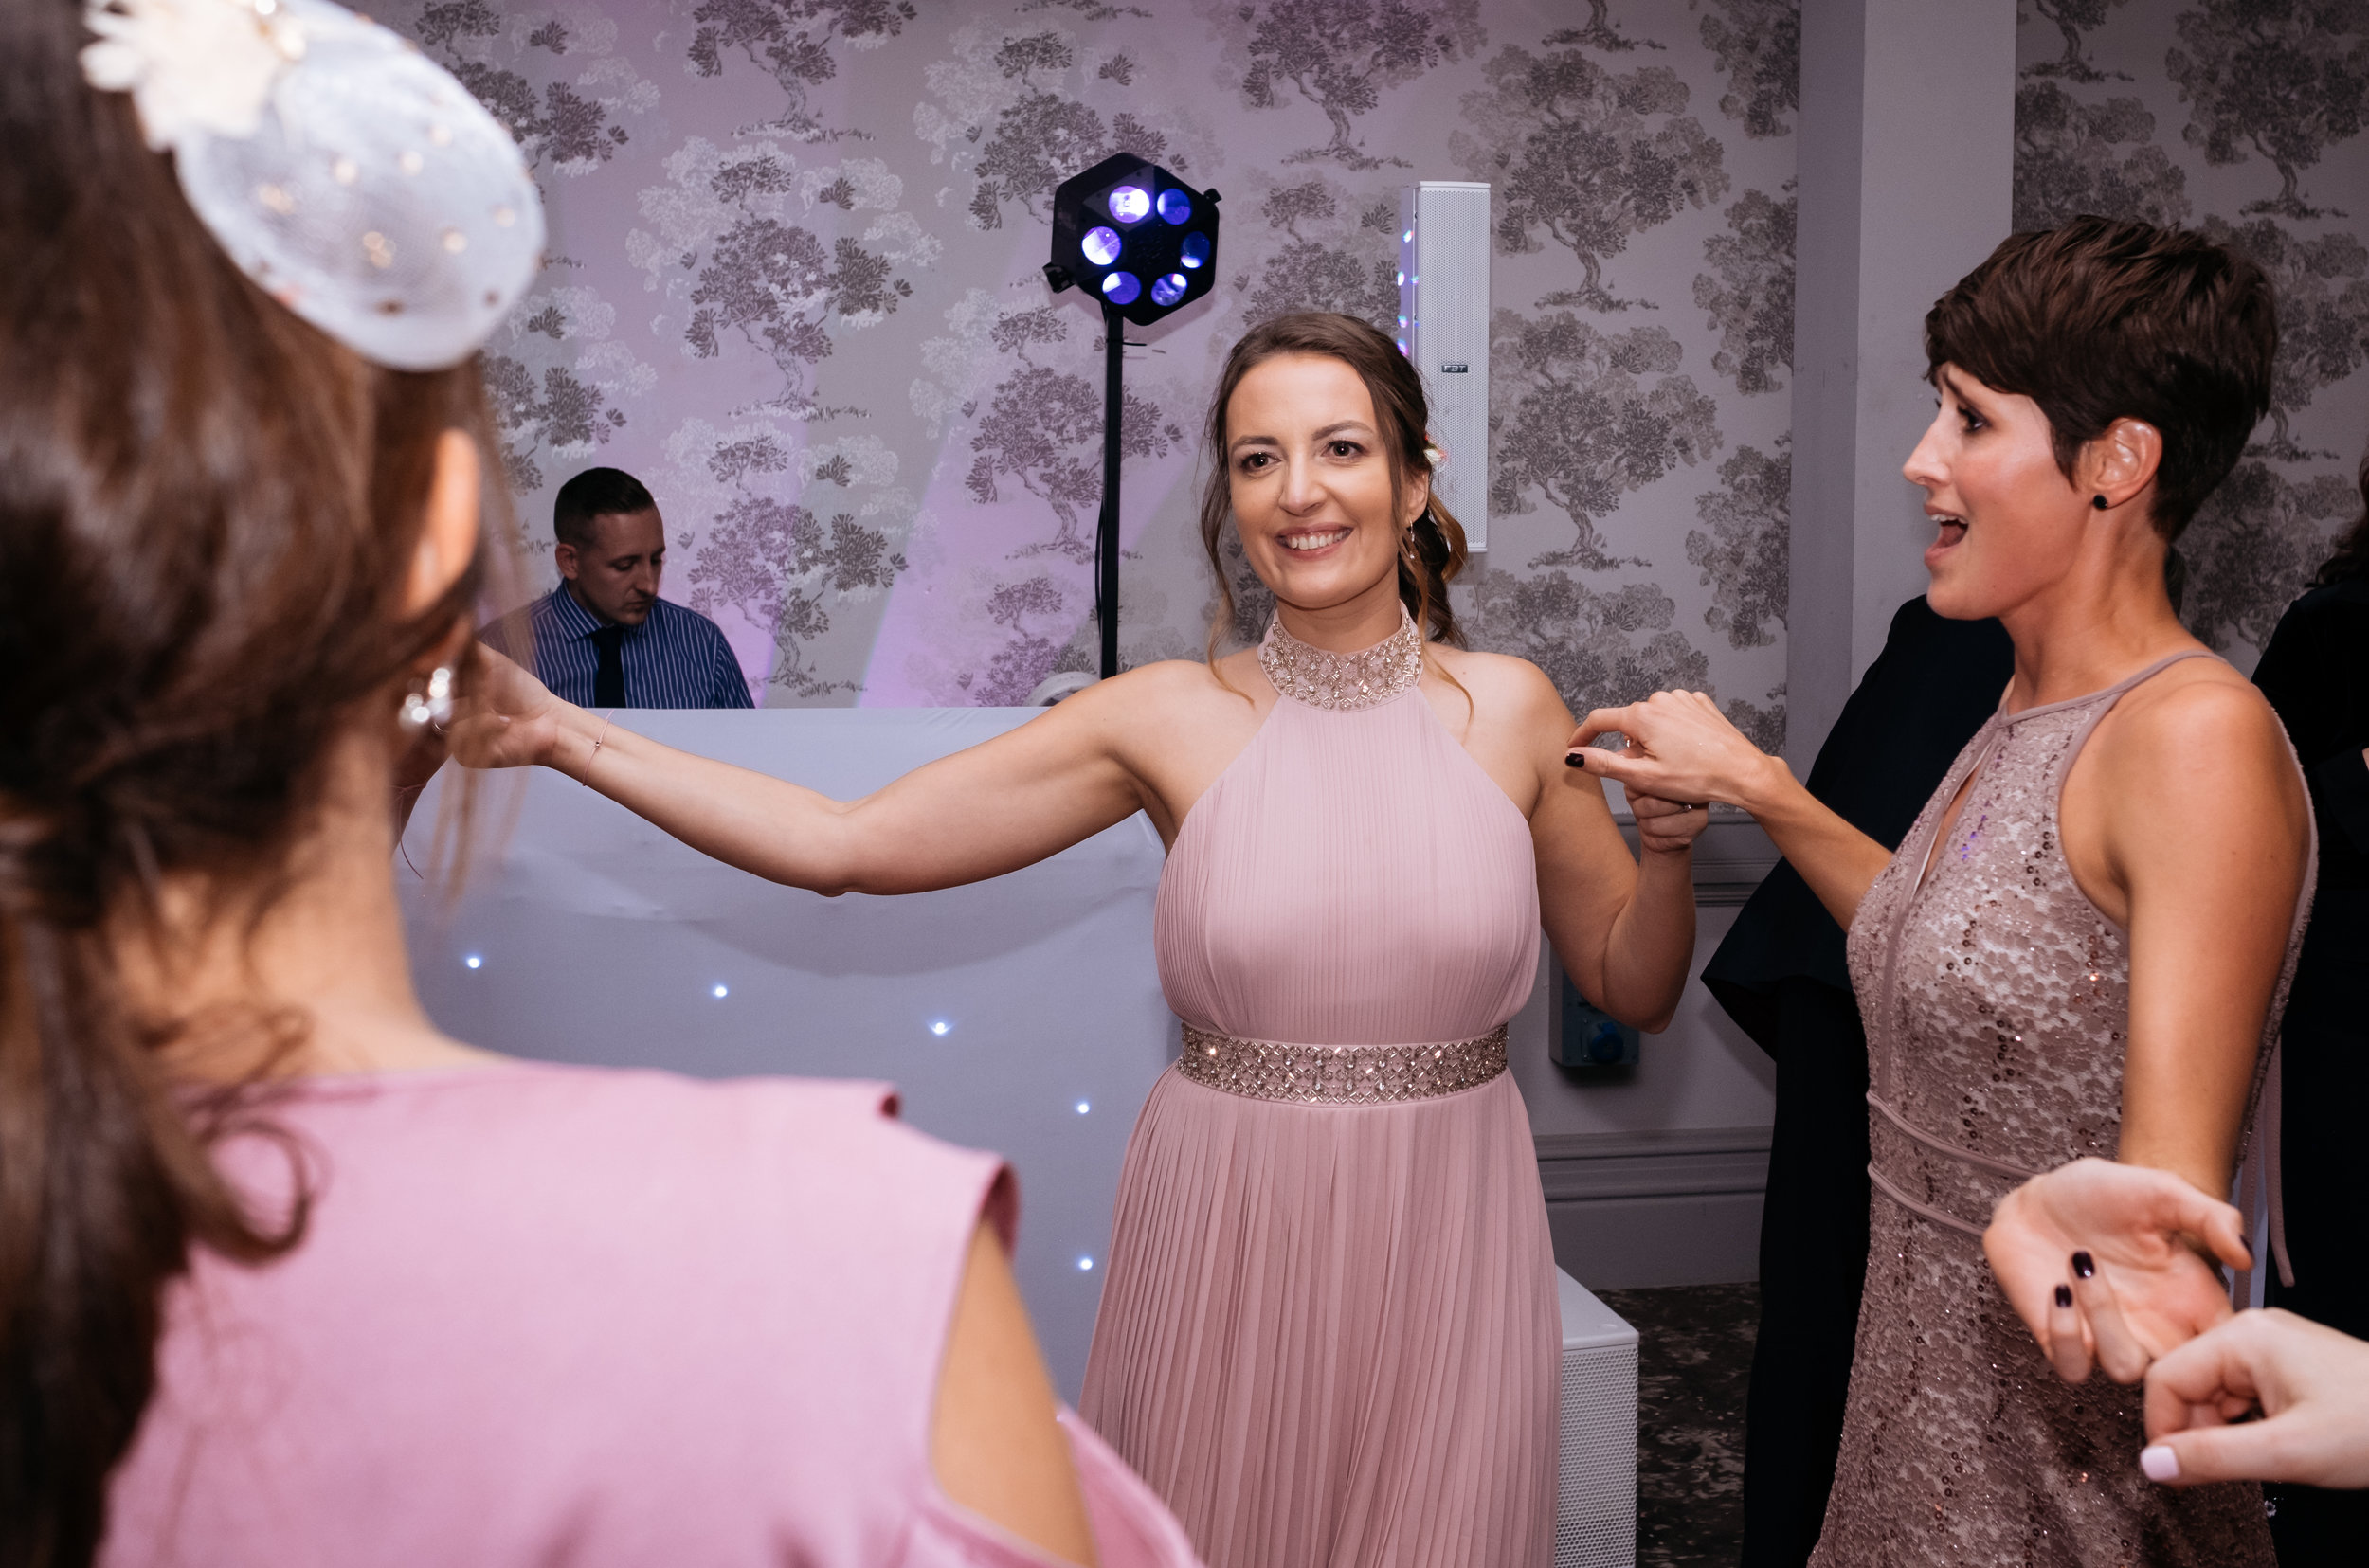 Bridesmaids dancing at wedding